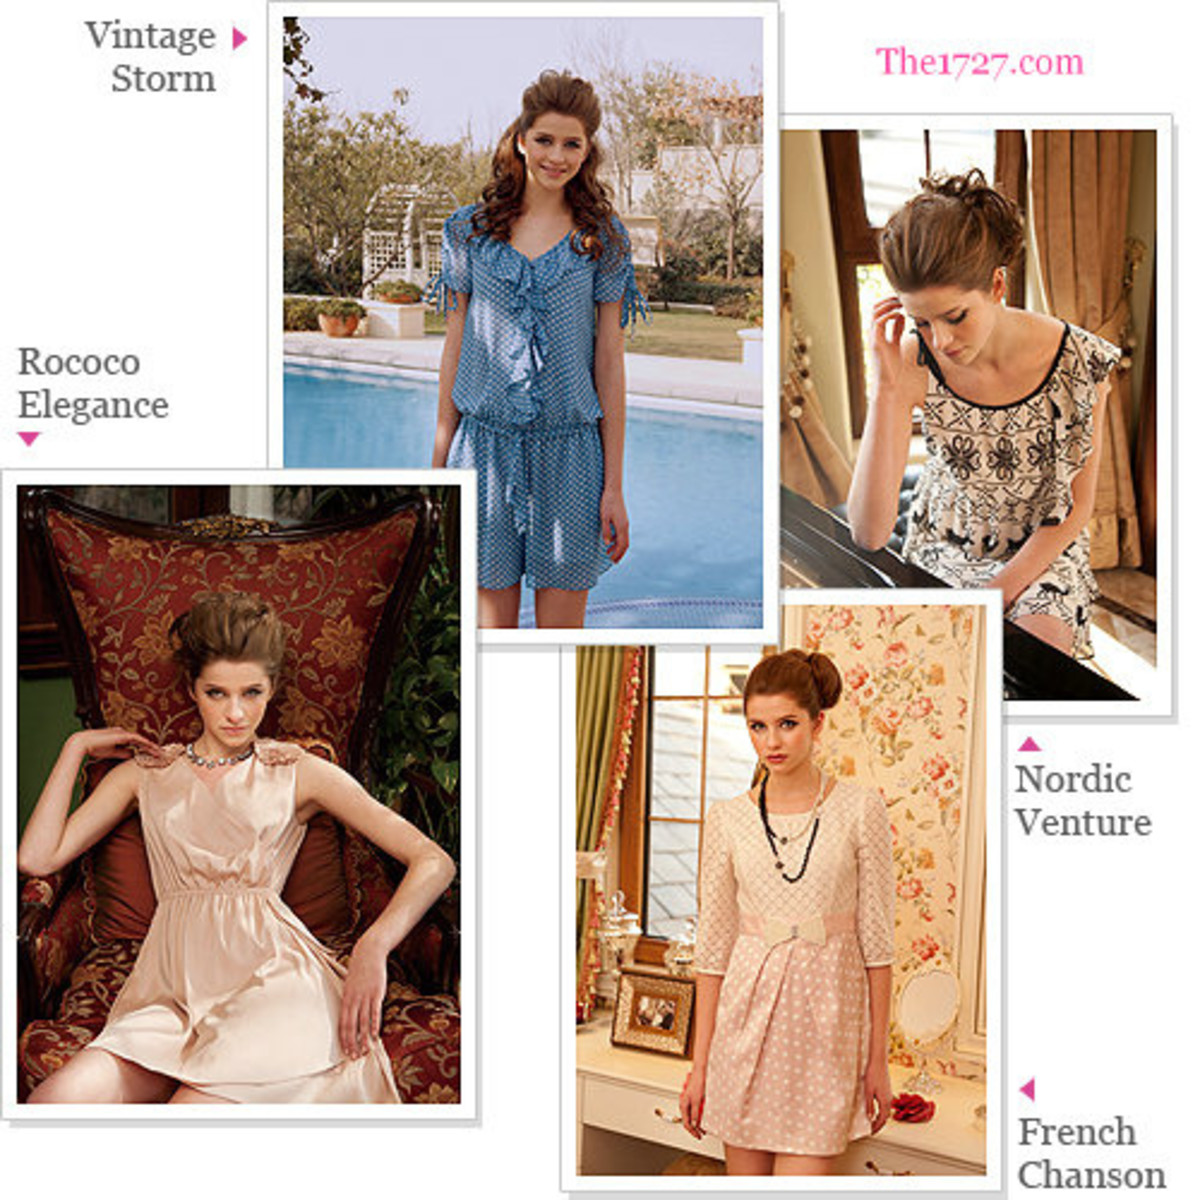 The above are all very Romantic yet modern looks.